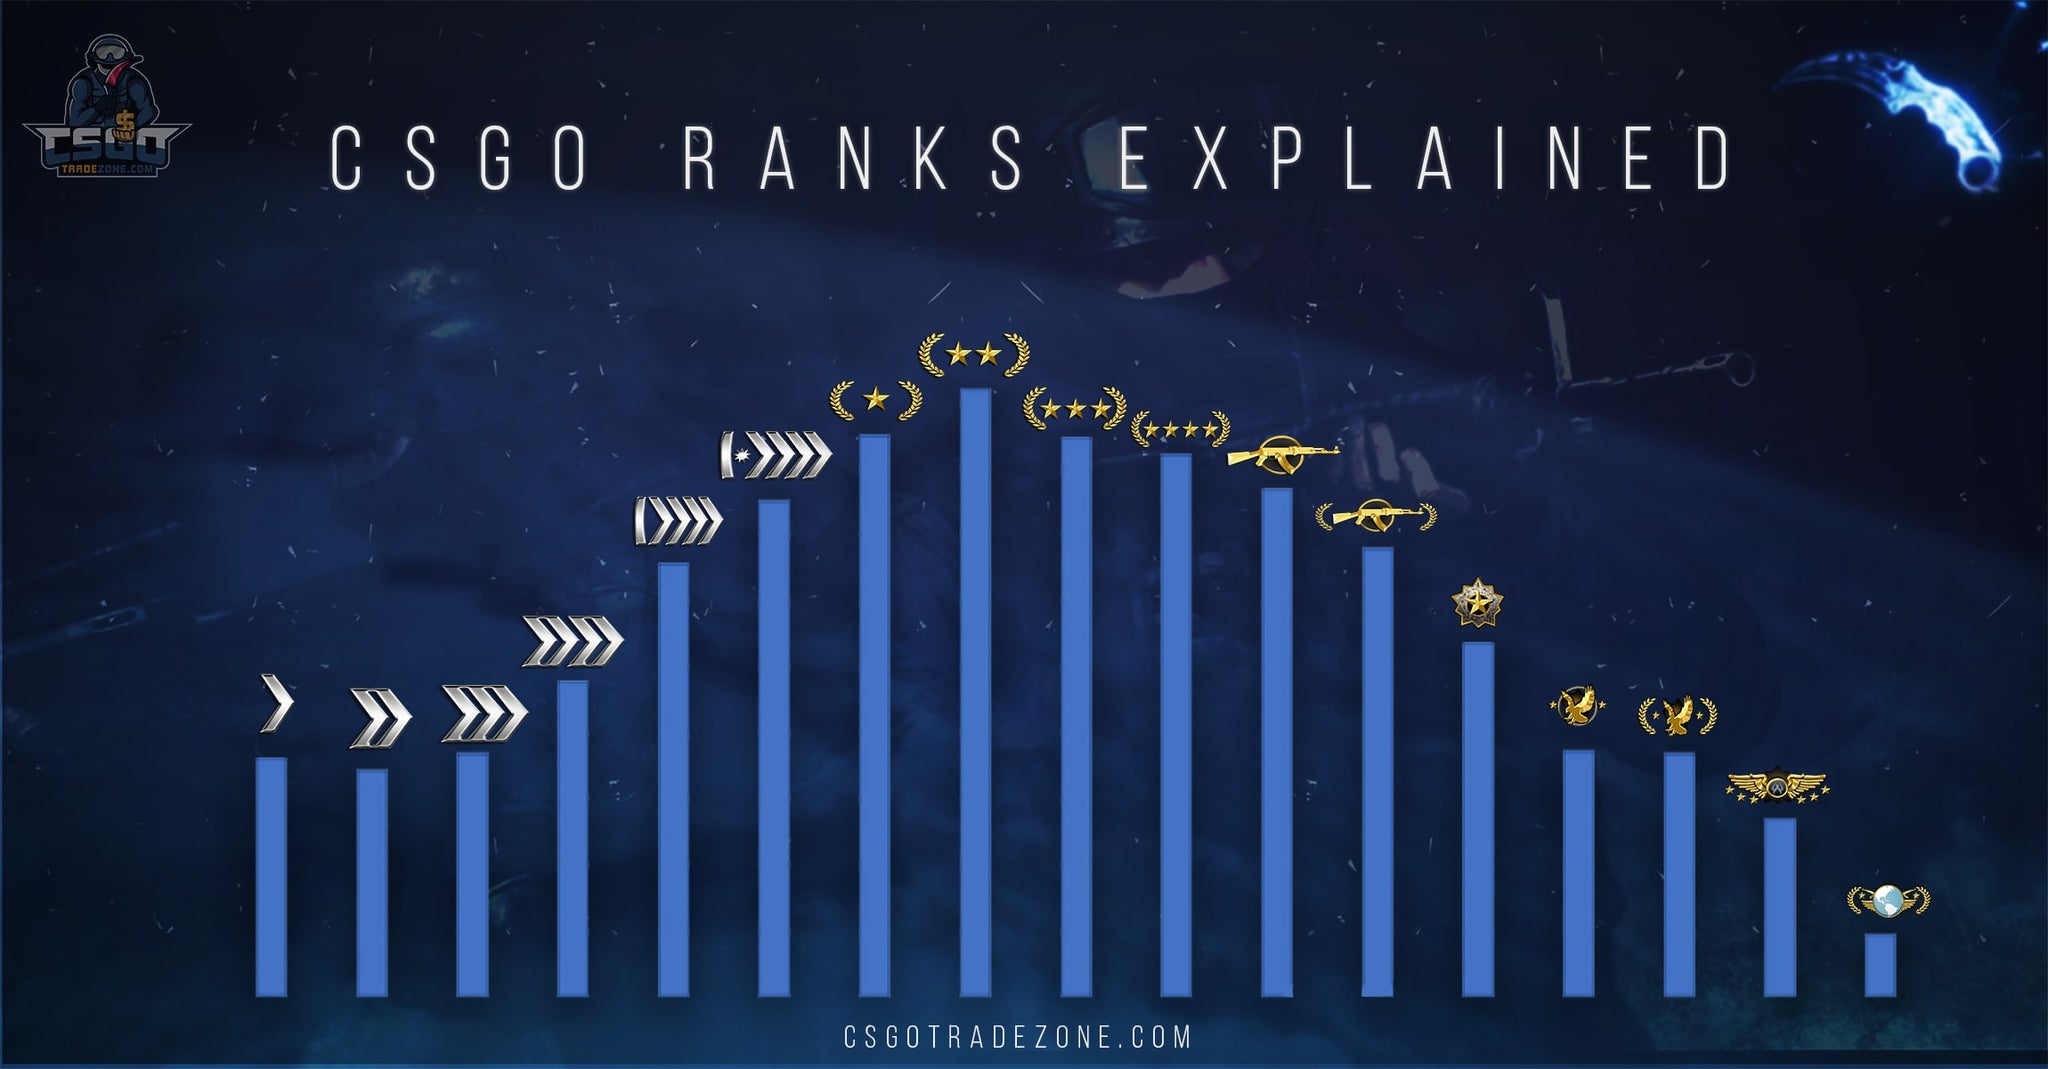 Csgo Ranks explained by csgotradezone (stats)